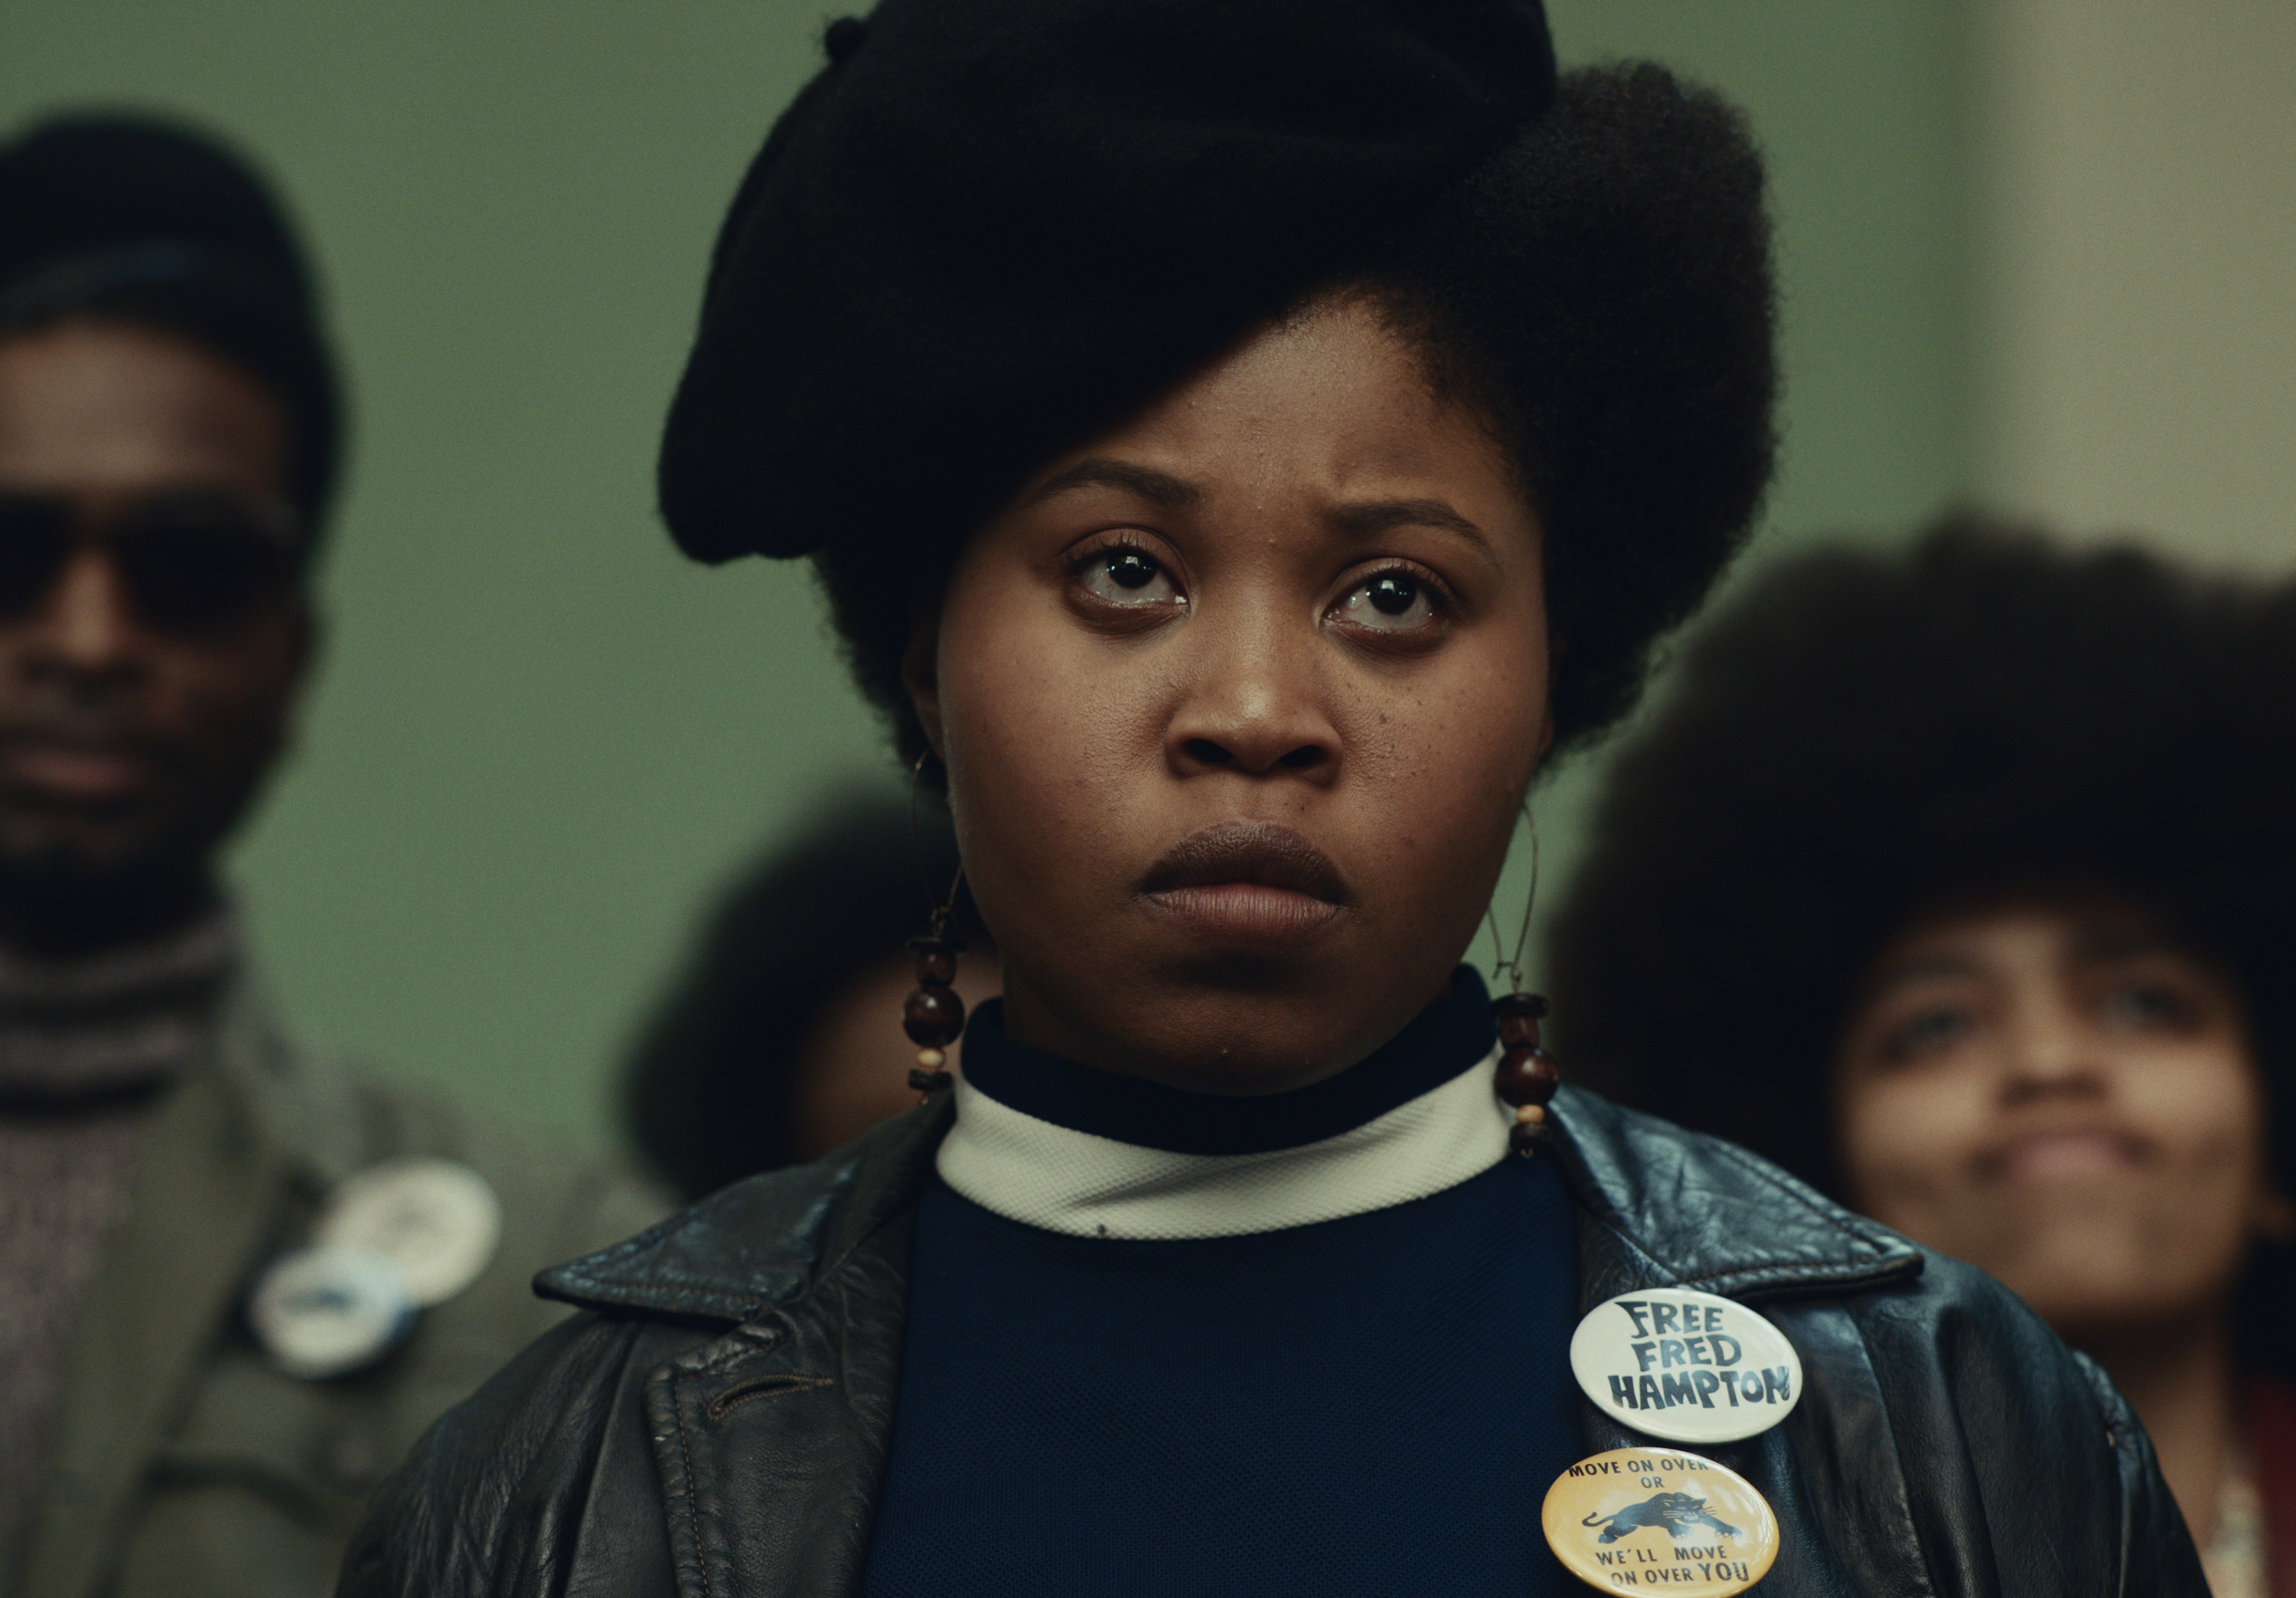 Dominique Fishback in character as Deborah Johnson in the film, wearing a black beret and leather vest